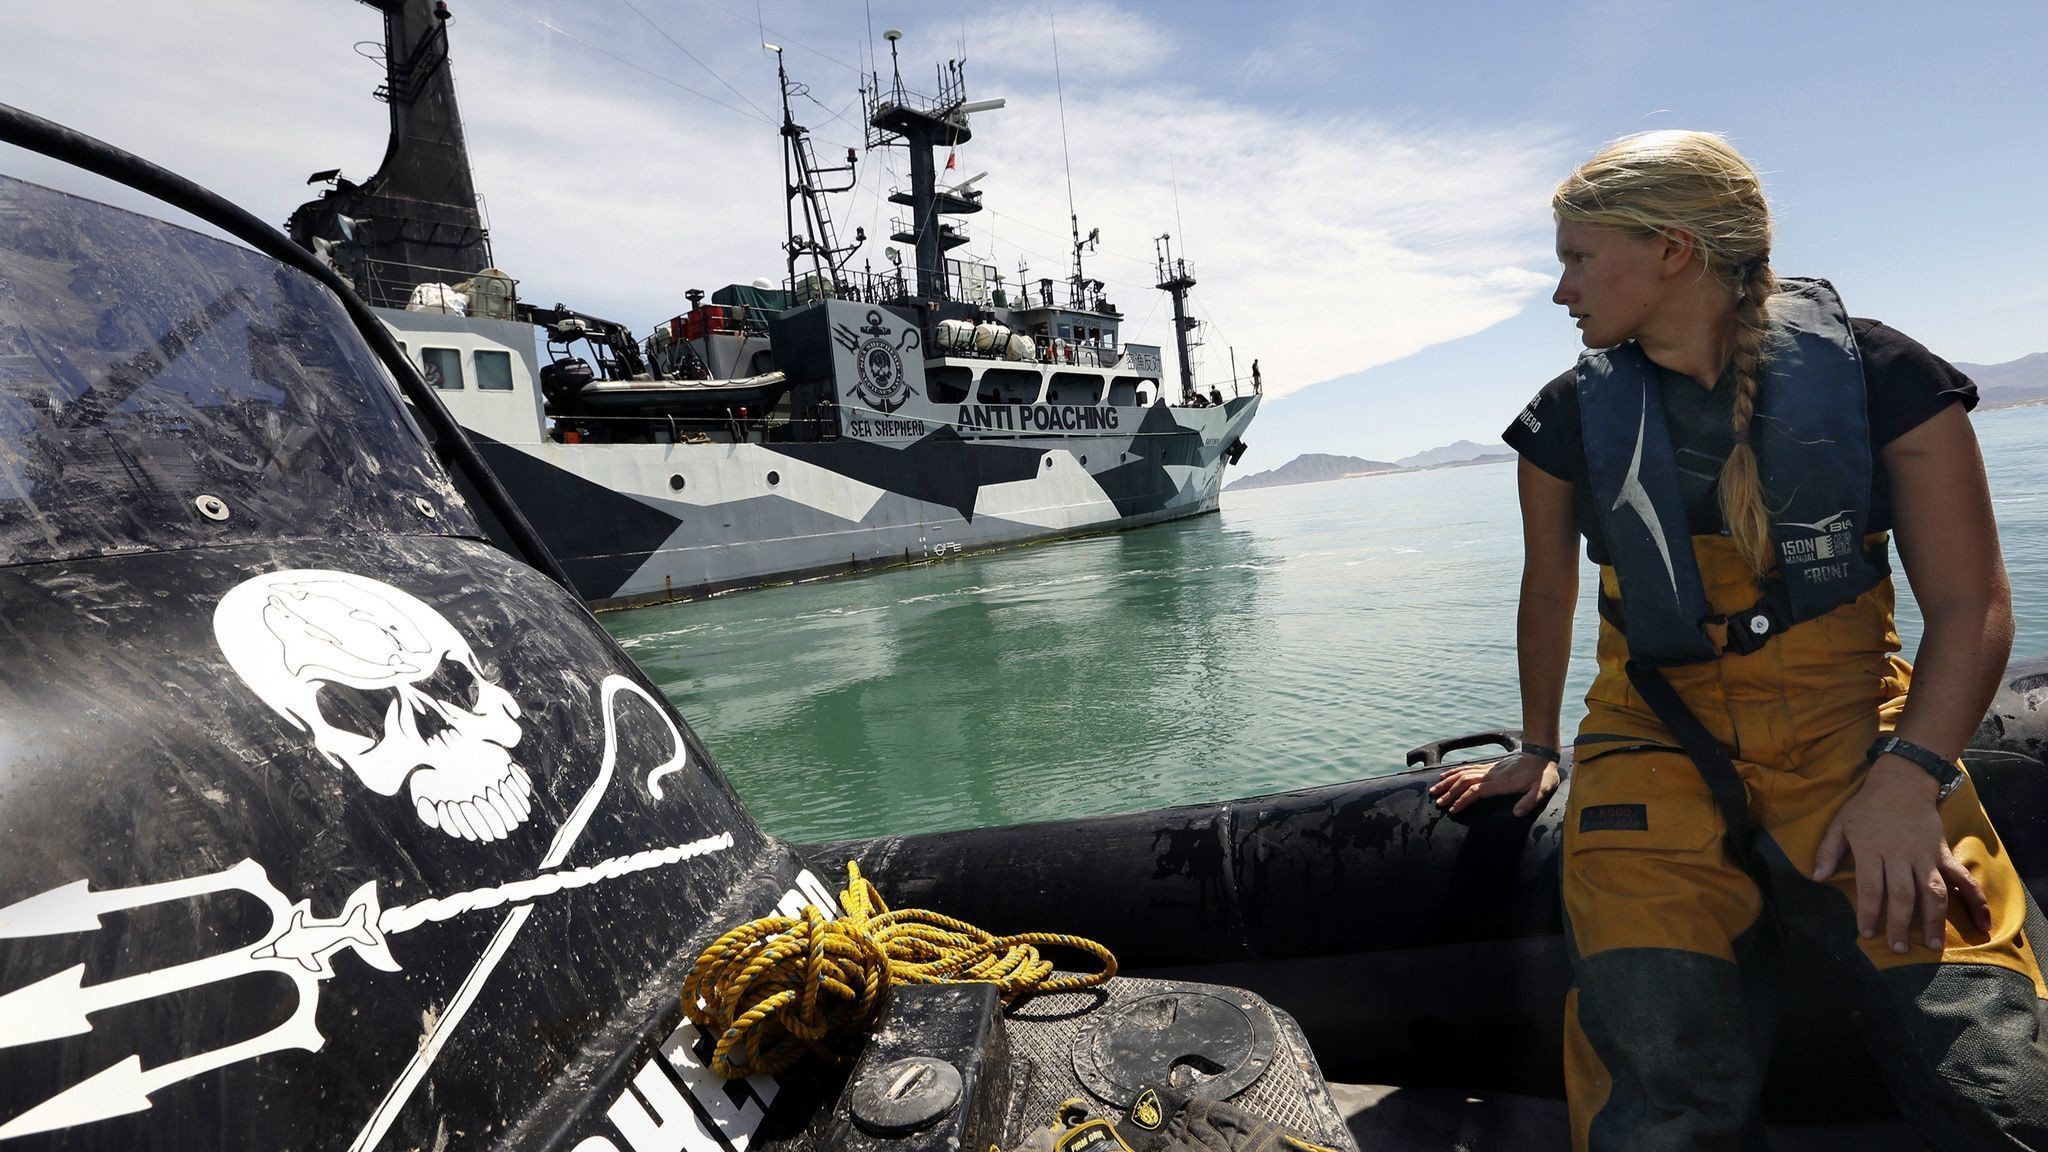 To save the world's rarest marine mammal, conservationists seek ban on Mexican seafood imports